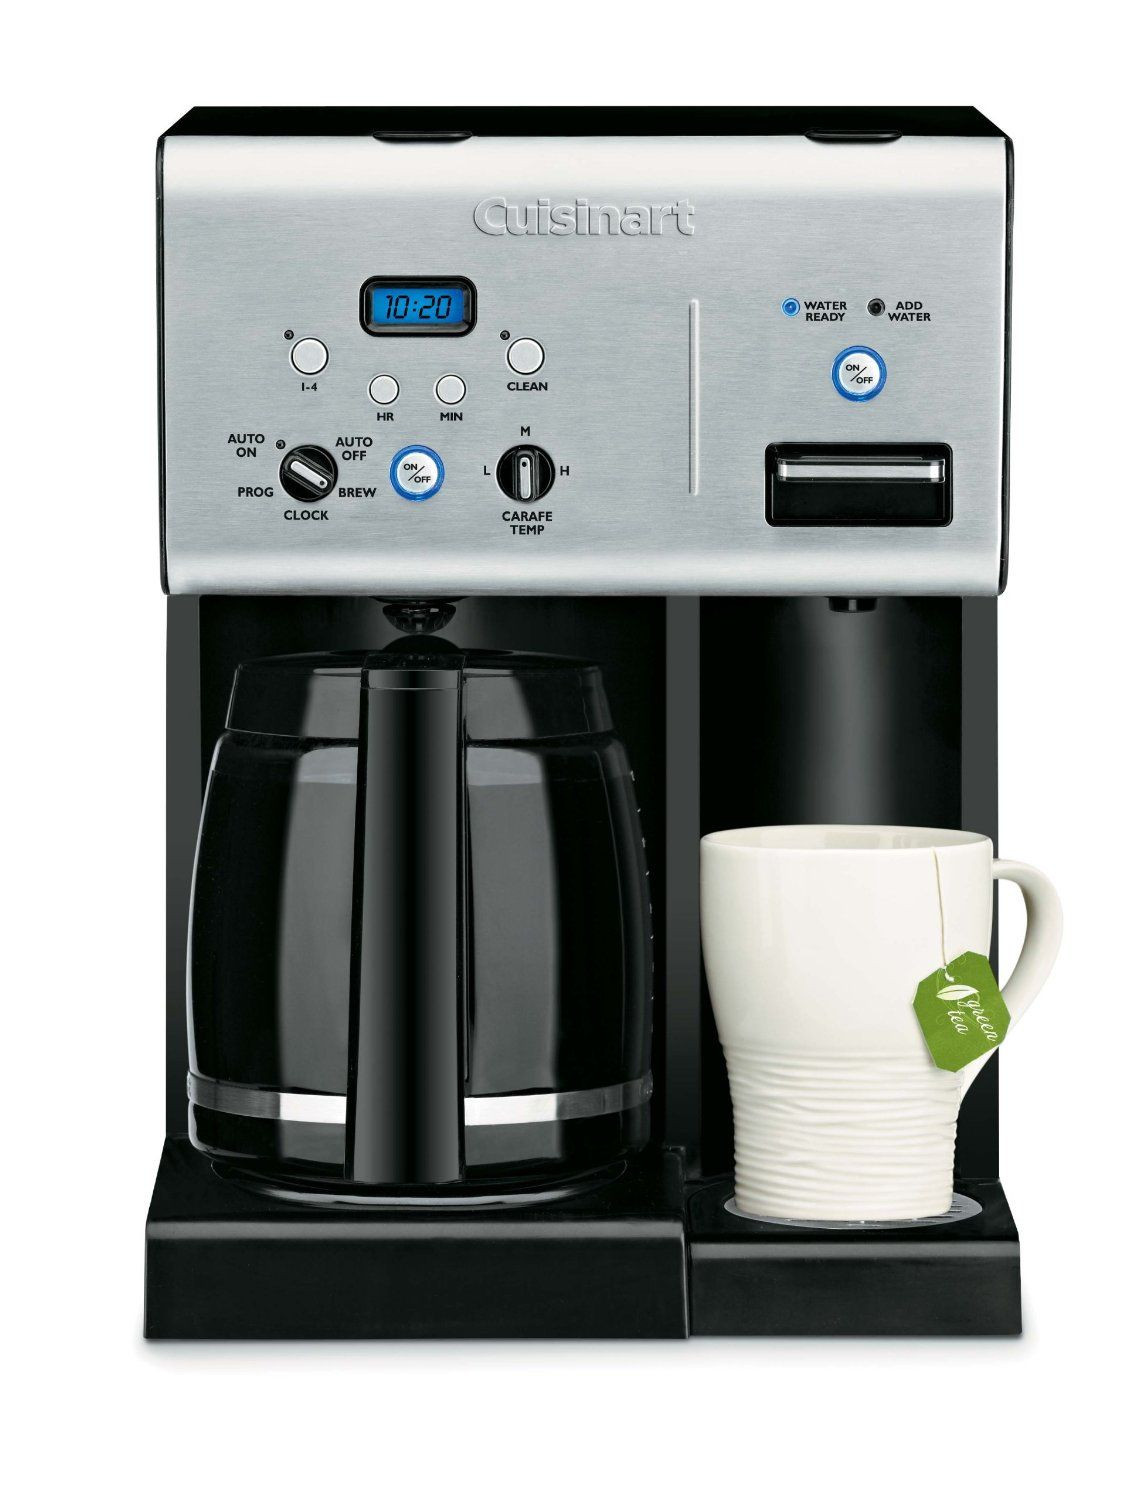 Cuisinart Coffee Maker 12 Cup With Hot Water System See This Awesome Image Coffee Maker Cuisinart Coffee Maker Coffee Maker Hot Water System